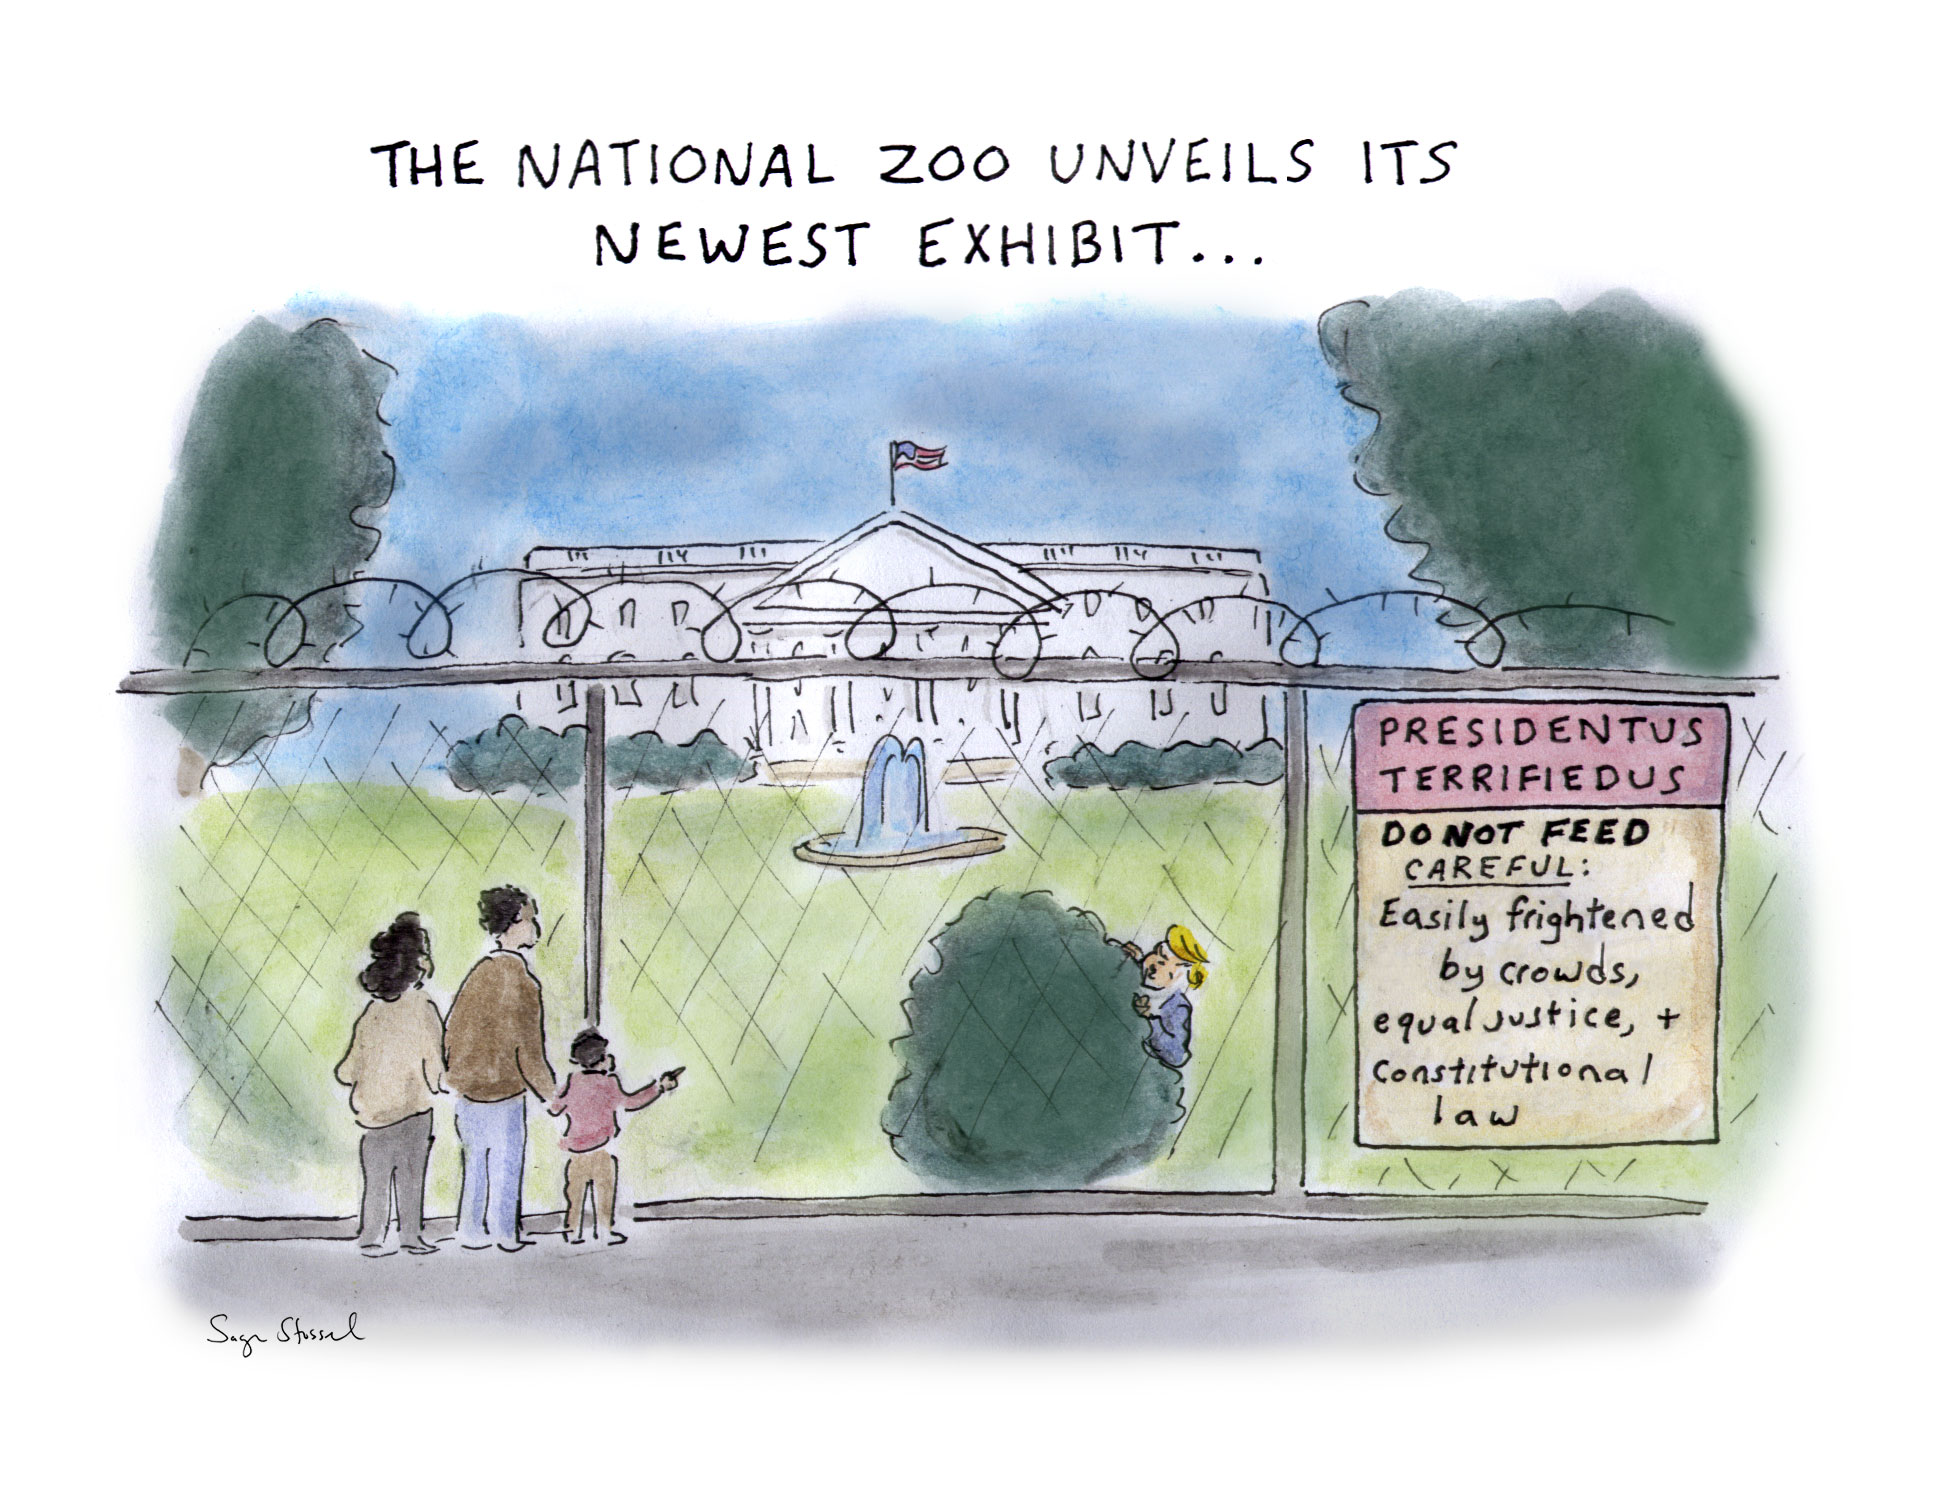 trump, hide, bunker, black lives matter, we the people, president, national zoo, coward, white house fencing, protests, cartoon, sage stossel